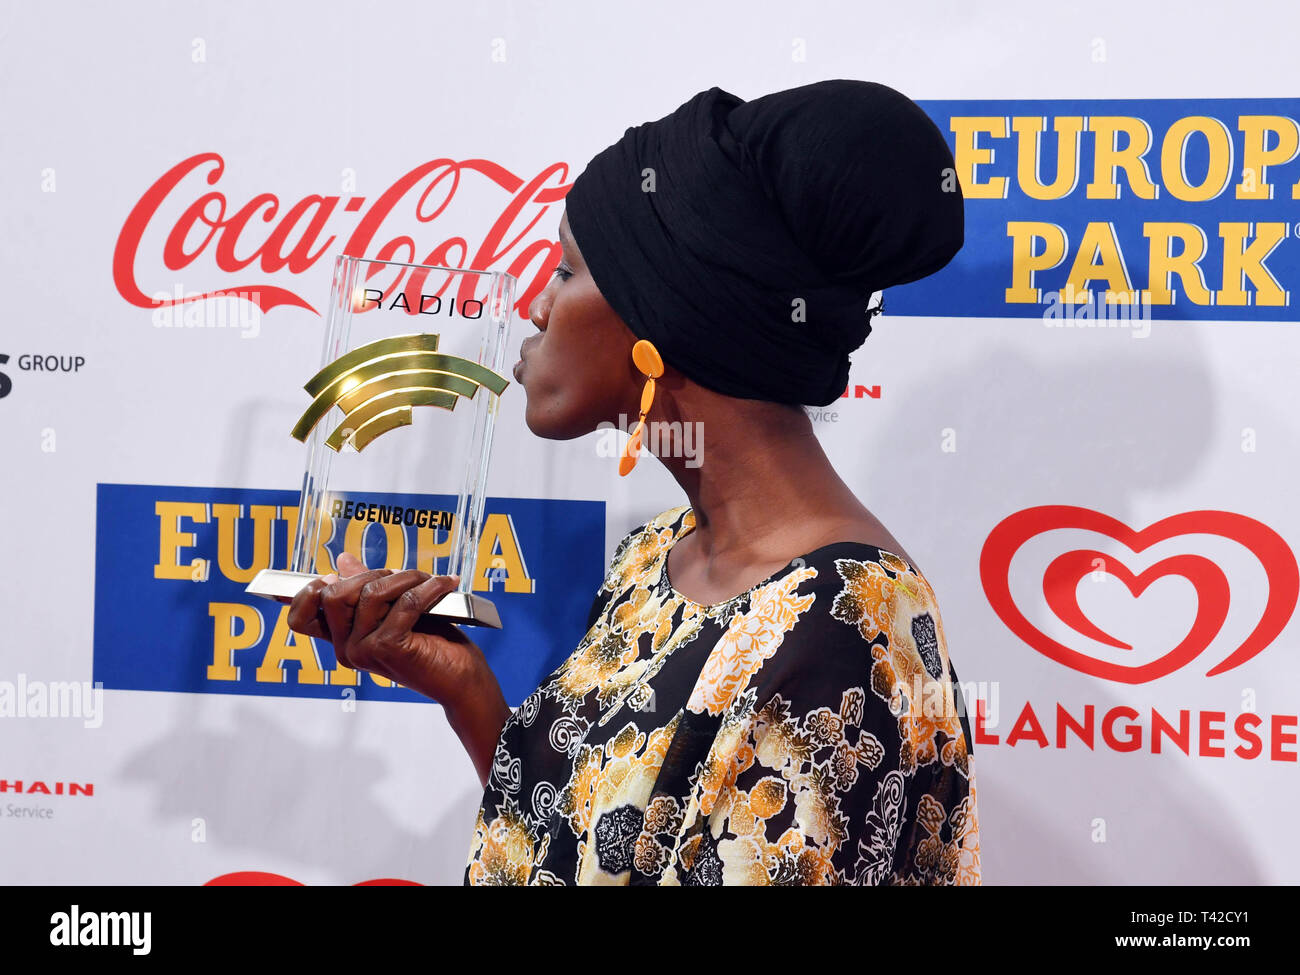 Rust, Germany. 12th Apr, 2019. Fatuma Musa Afrah, winner of the special prize 2018 at the Radio Regenbogen Awards, comes to Europa-Park to present the awards. Credit: Uli Deck/dpa/Alamy Live News Stock Photo